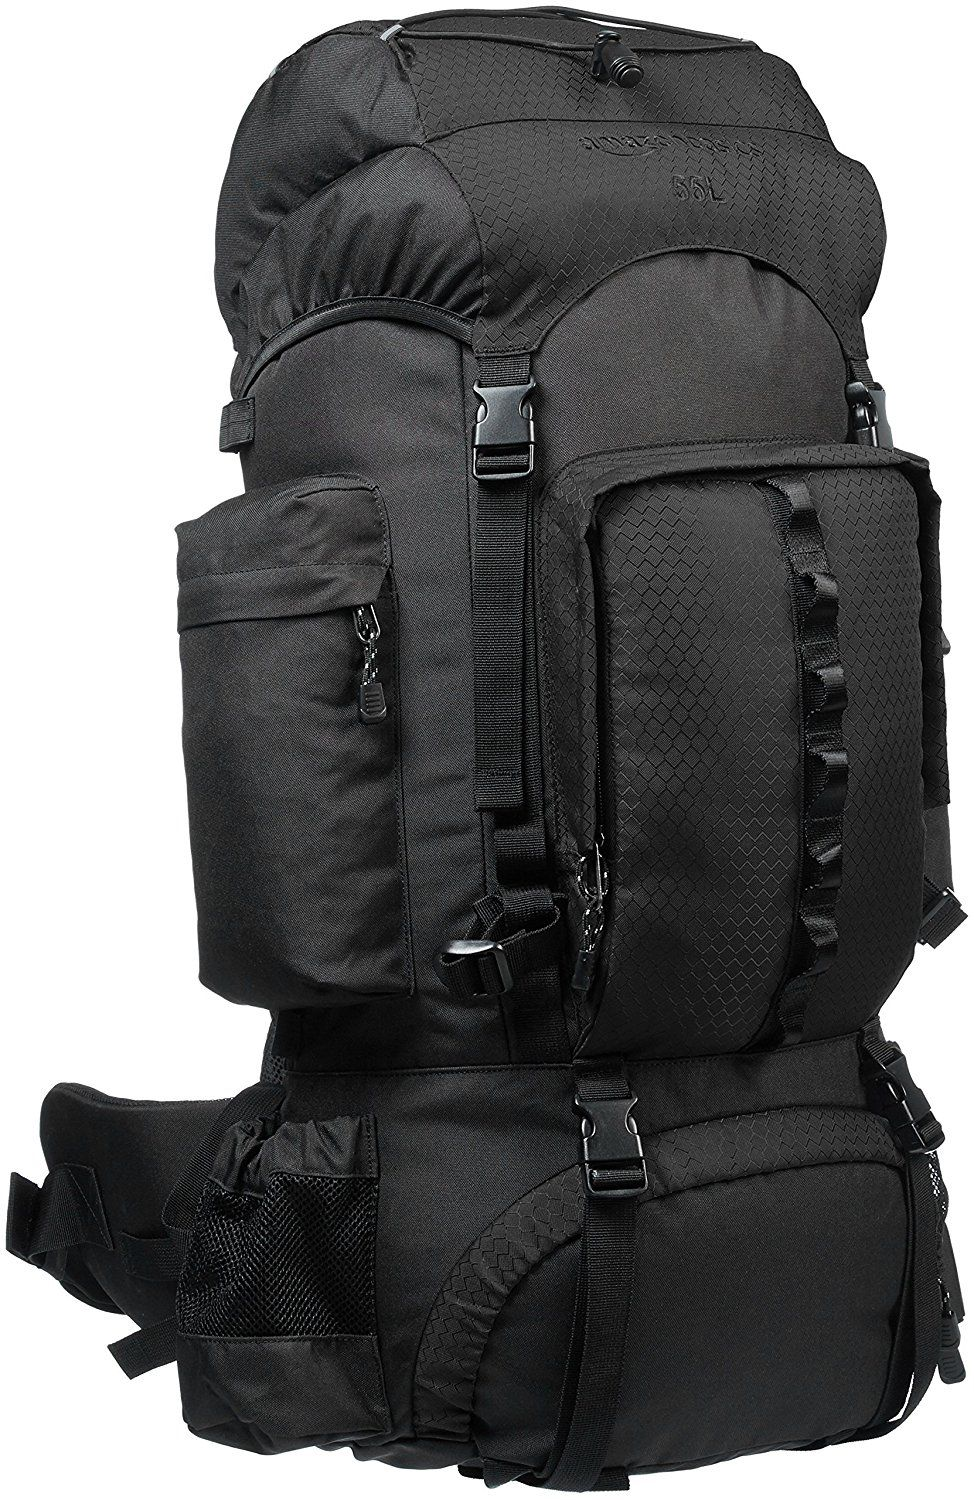 b99deac655cb $54.99 AmazonBasics Internal Frame Hiking Backpack with Rainfly ...